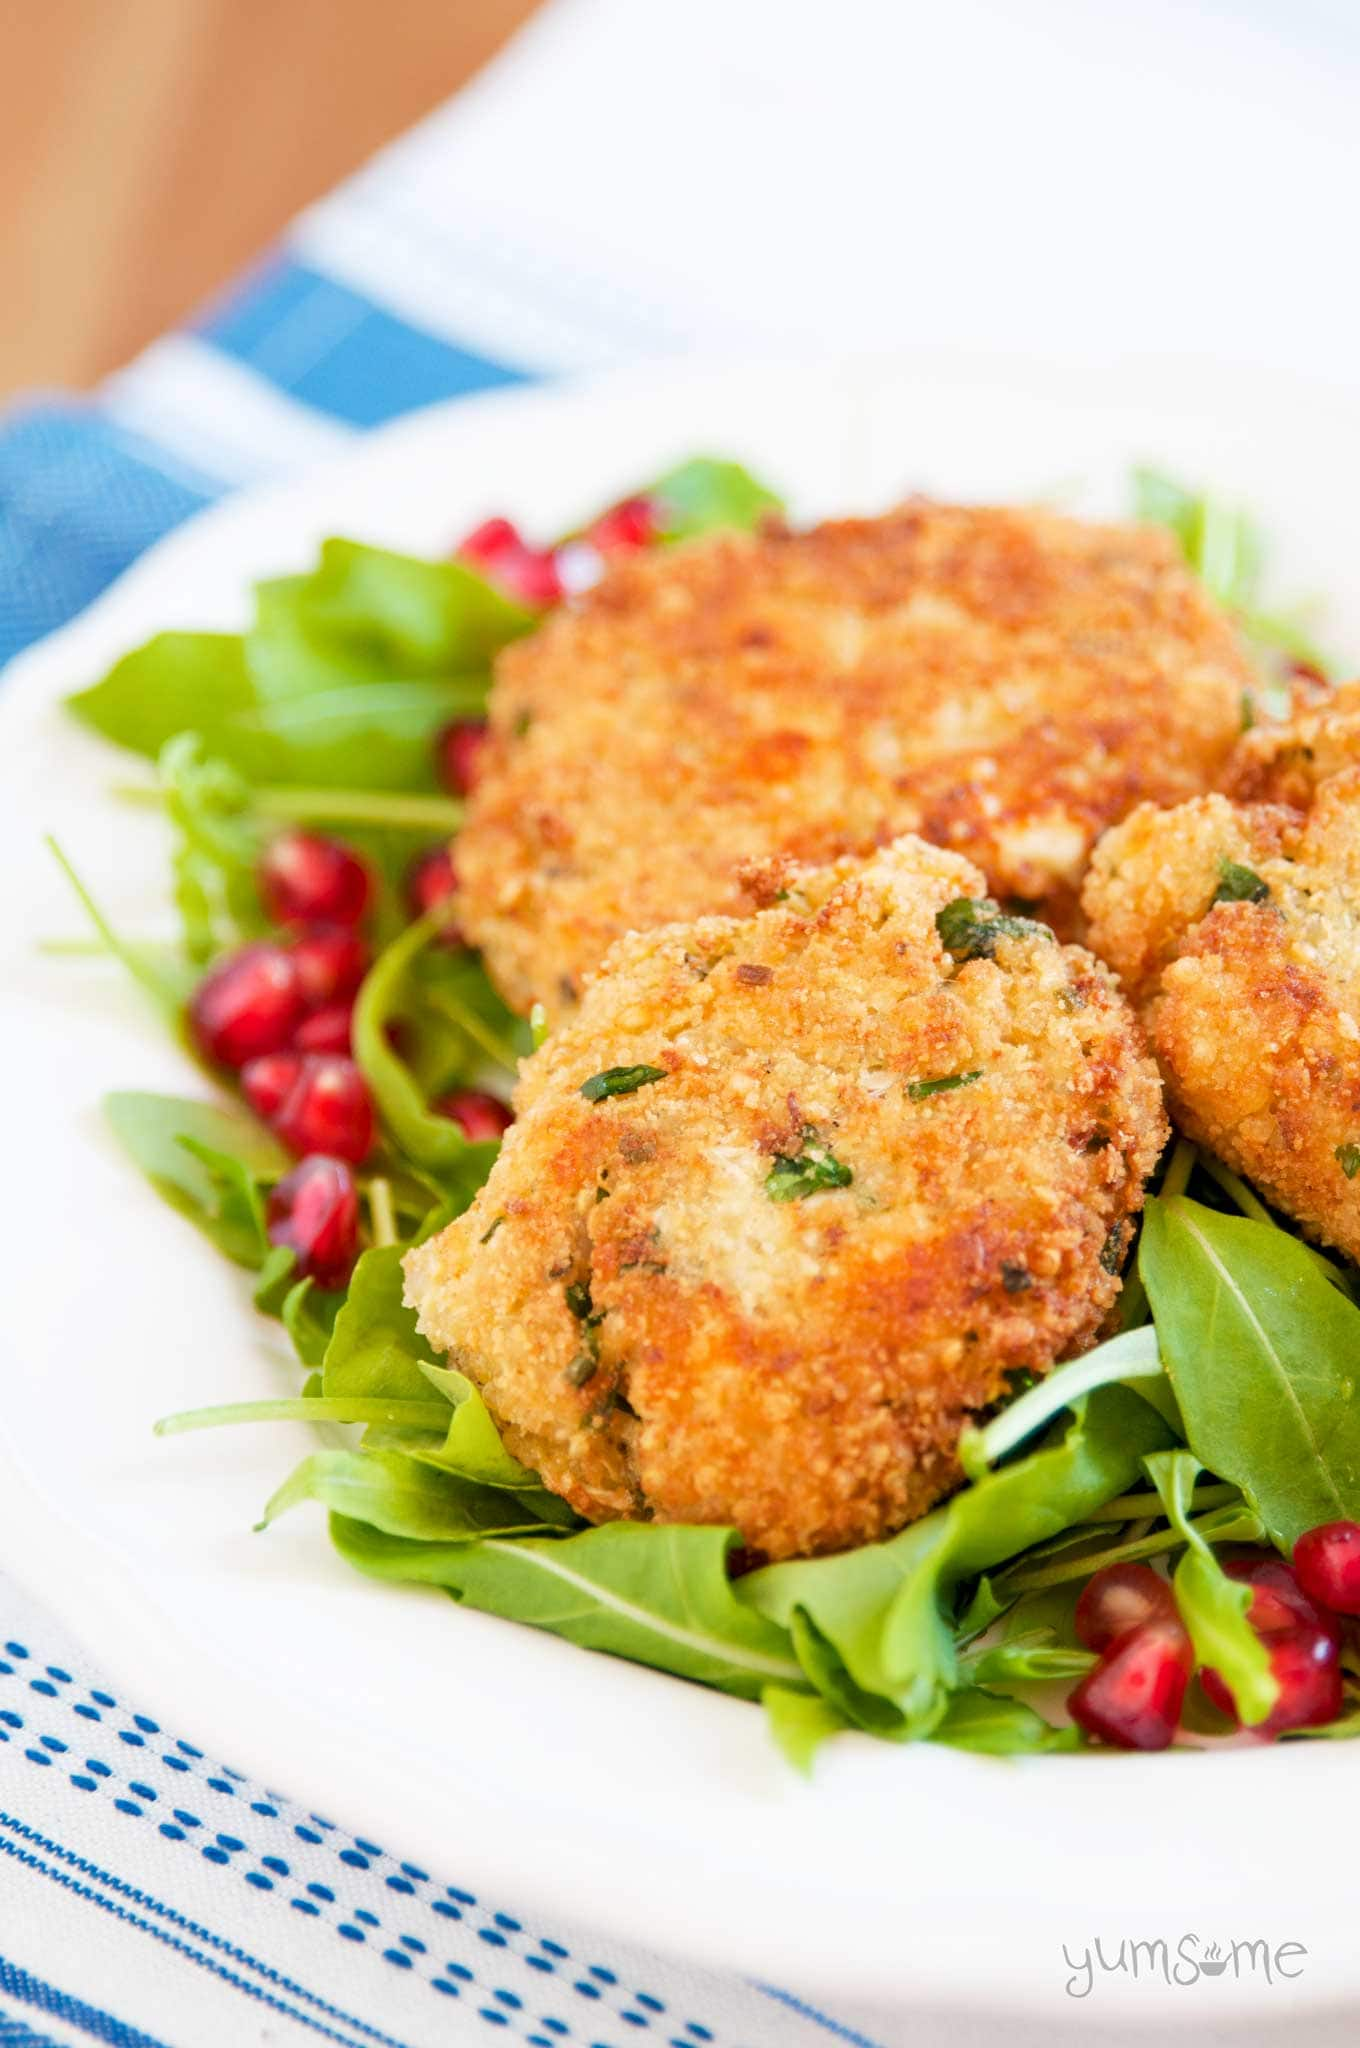 Easy Vegan Quinoa and Cheese Patties